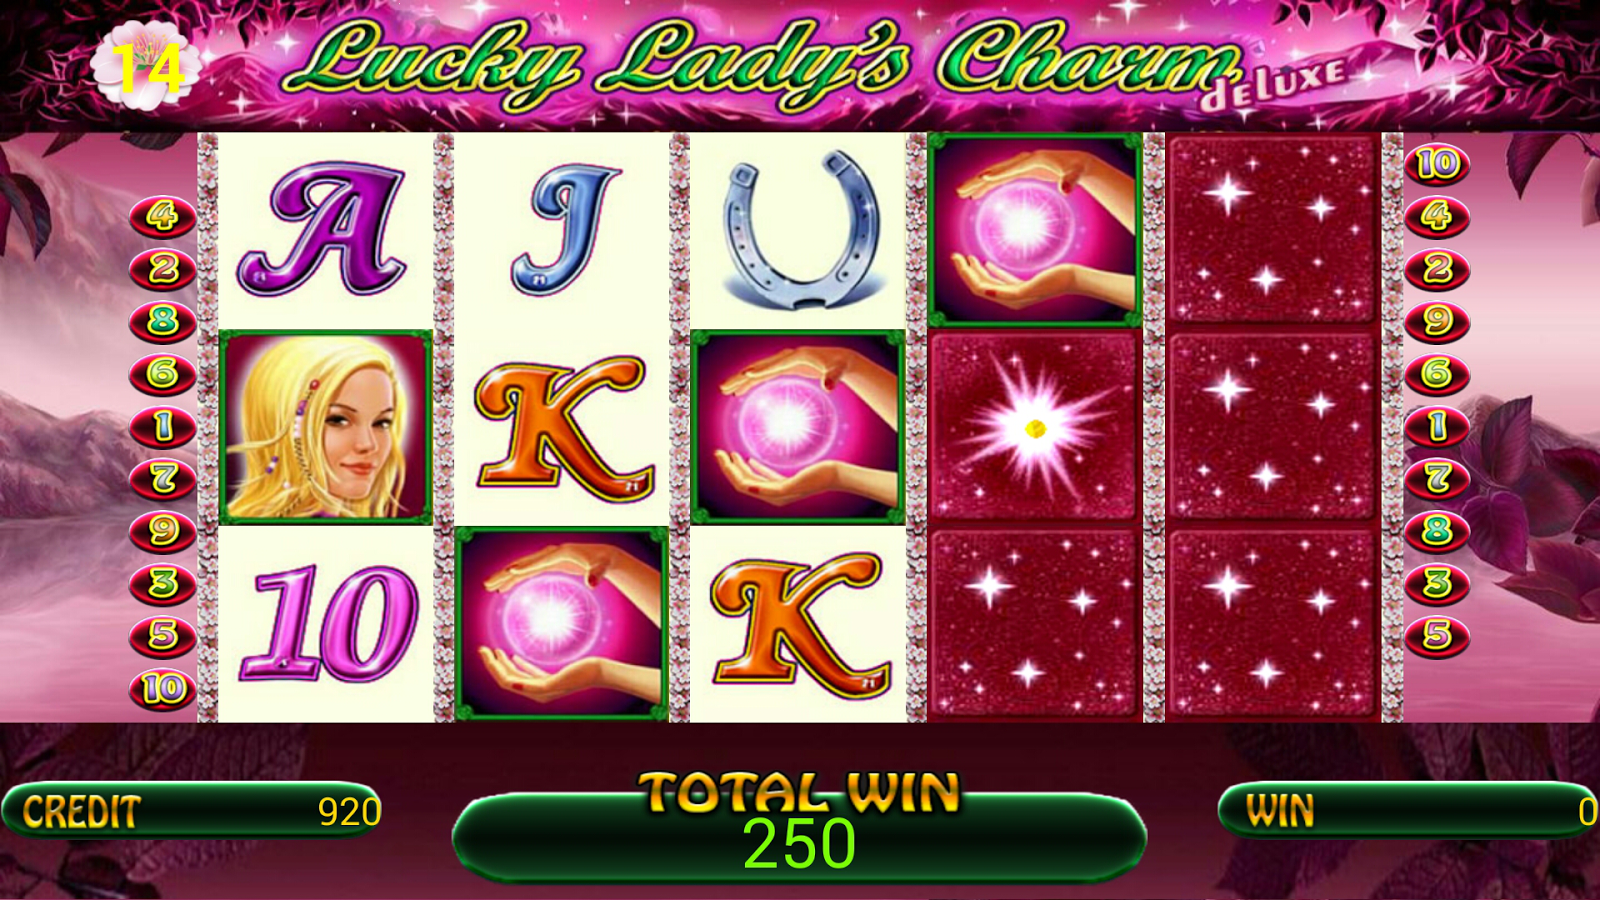 onlin casino lucky lady charm slot